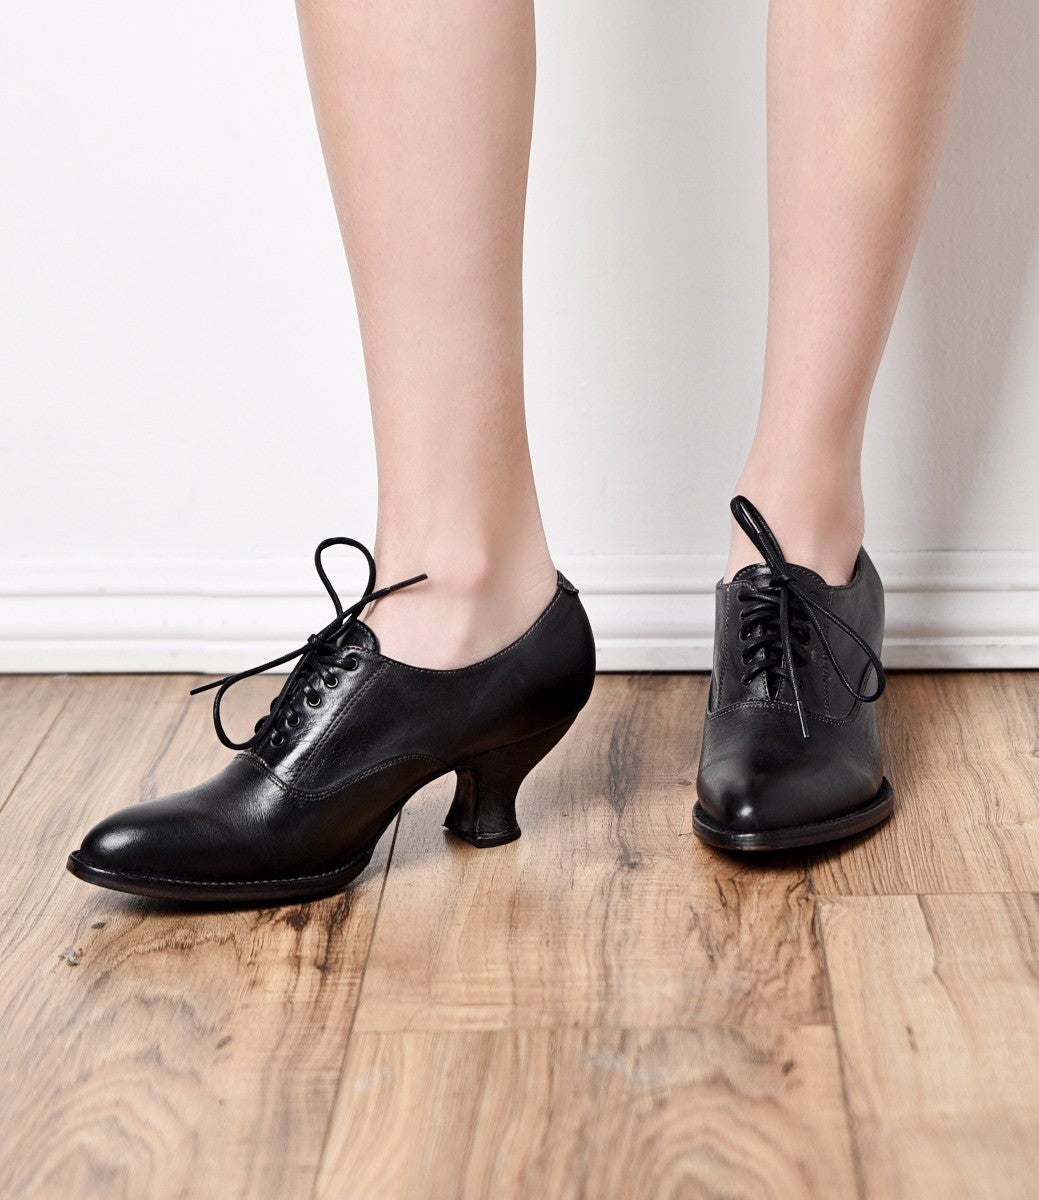 Women's 1920s Shoe Styles and History Victorian Style Leather Lace-Up Black Shoes $195.00 AT vintagedancer.com